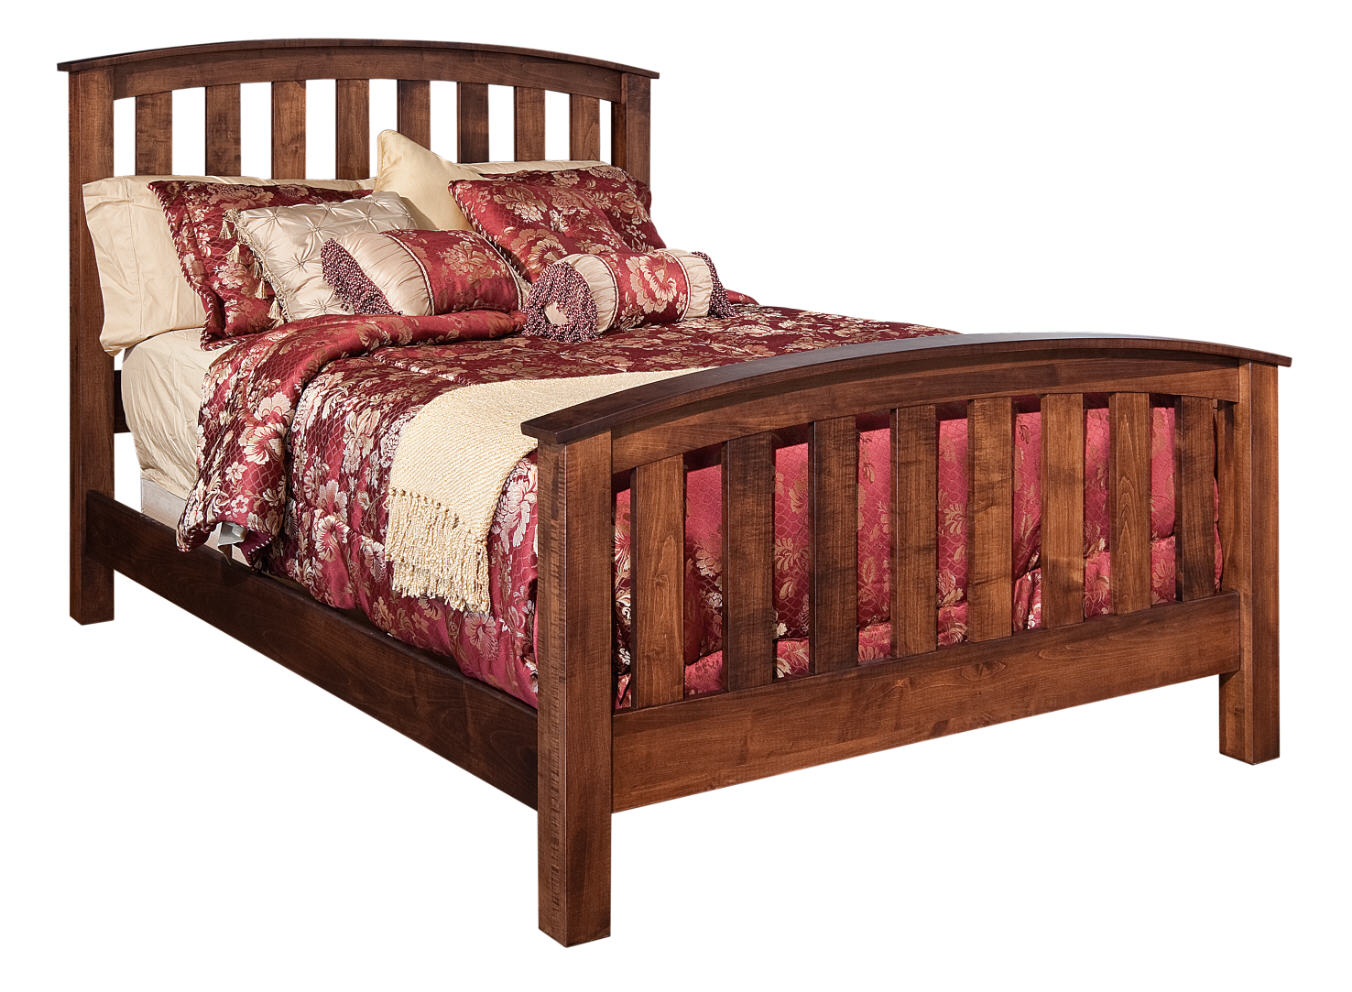 Kountry Mission Bed